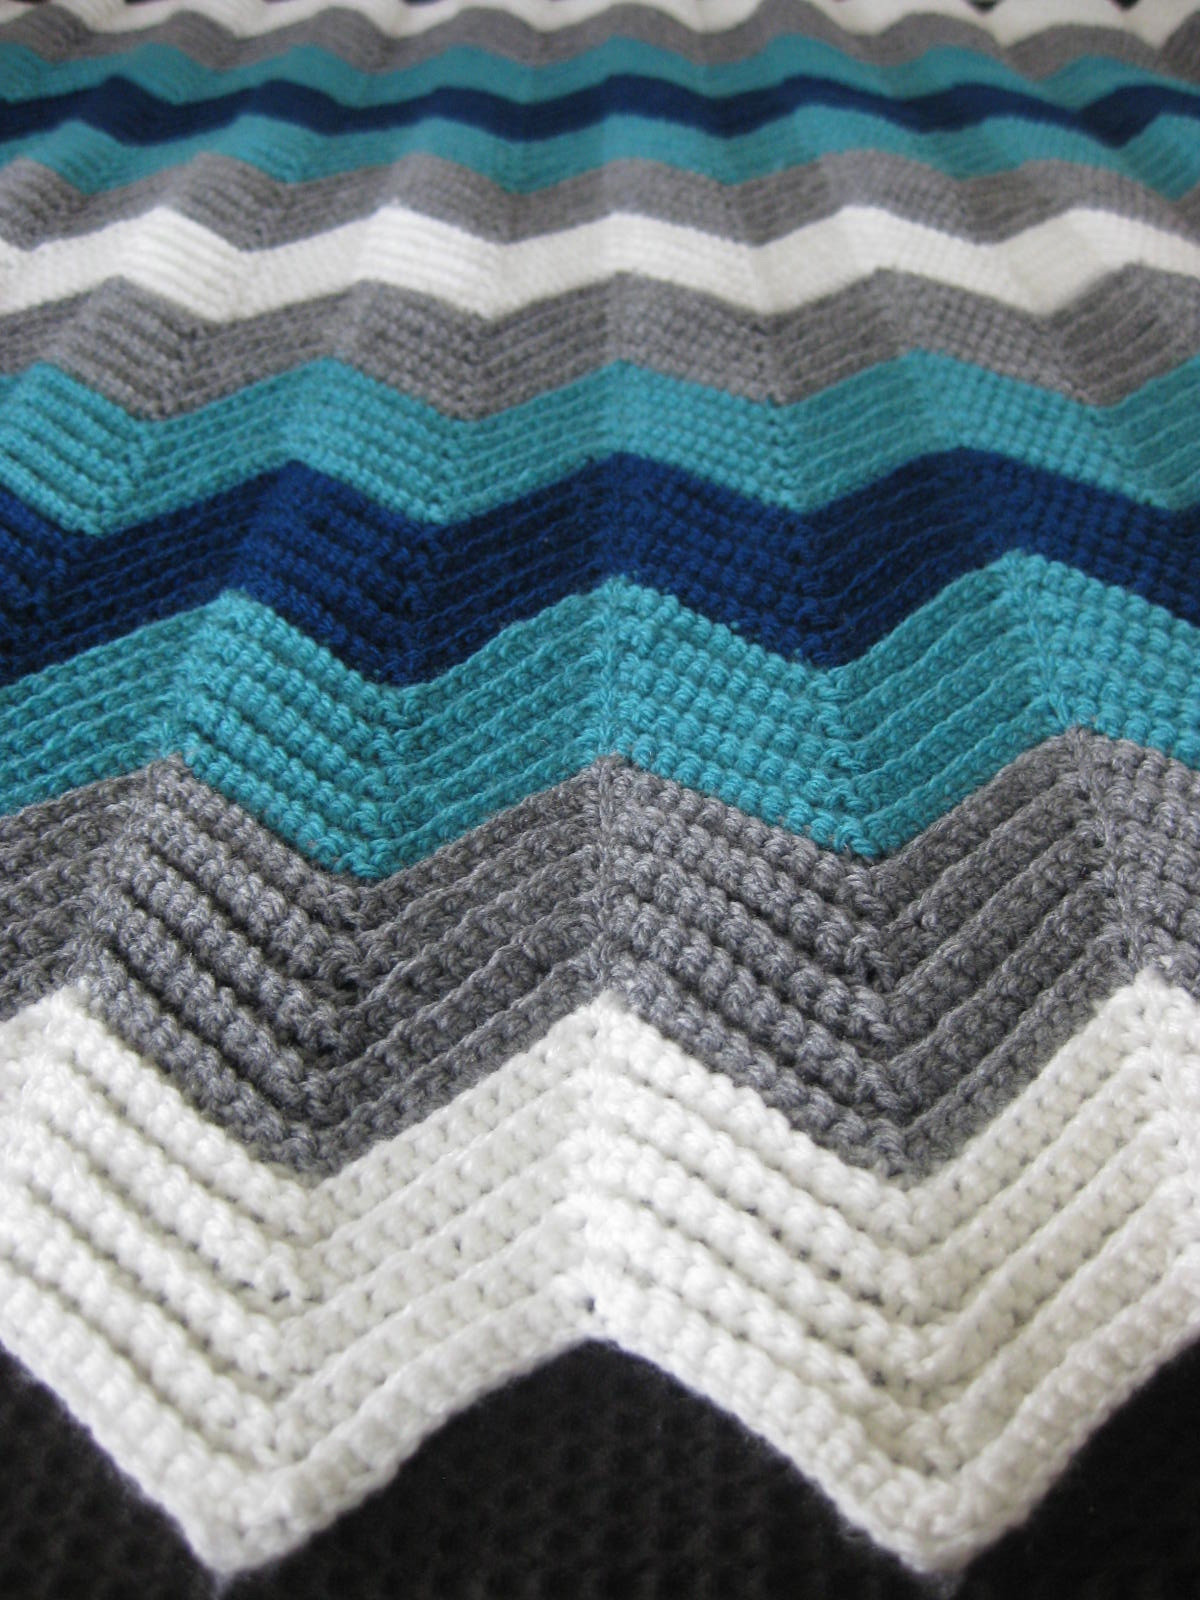 Best Of Chevron Afghan 1 Free Chevron Crochet Pattern Of Top 49 Models Free Chevron Crochet Pattern